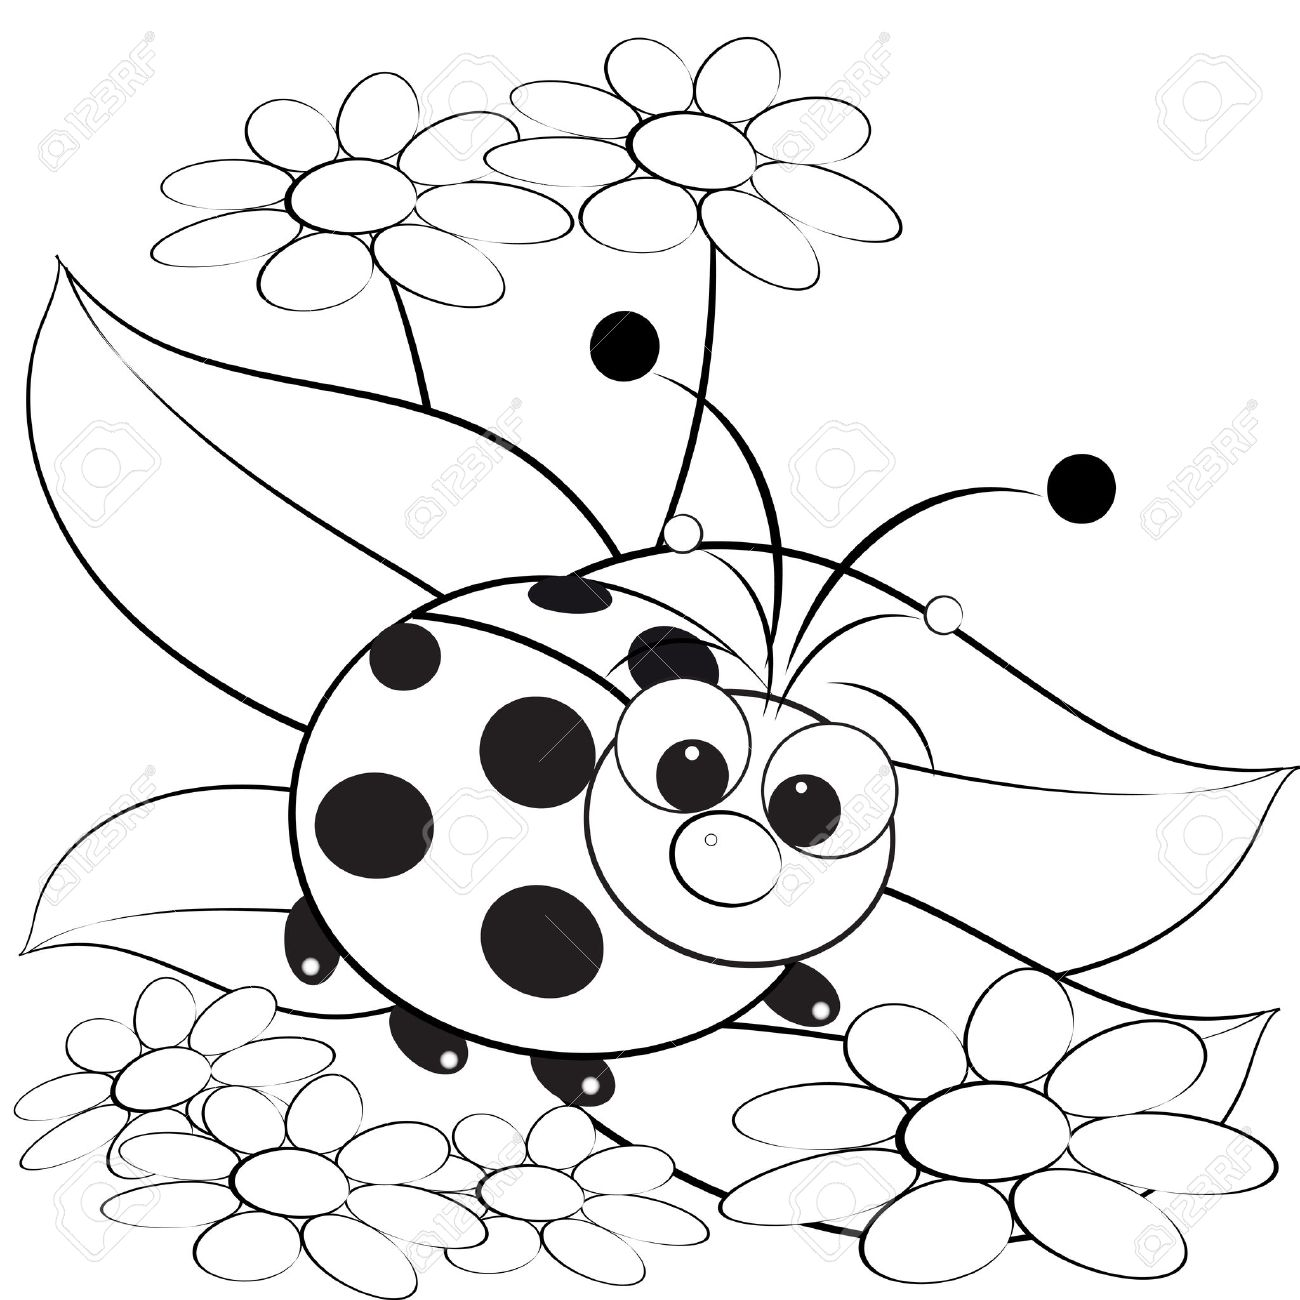 Coloring pages of ladybugs for kids - Kids Illustration With Ladybug And Daisy Coloring Page Stock Vector 5029268